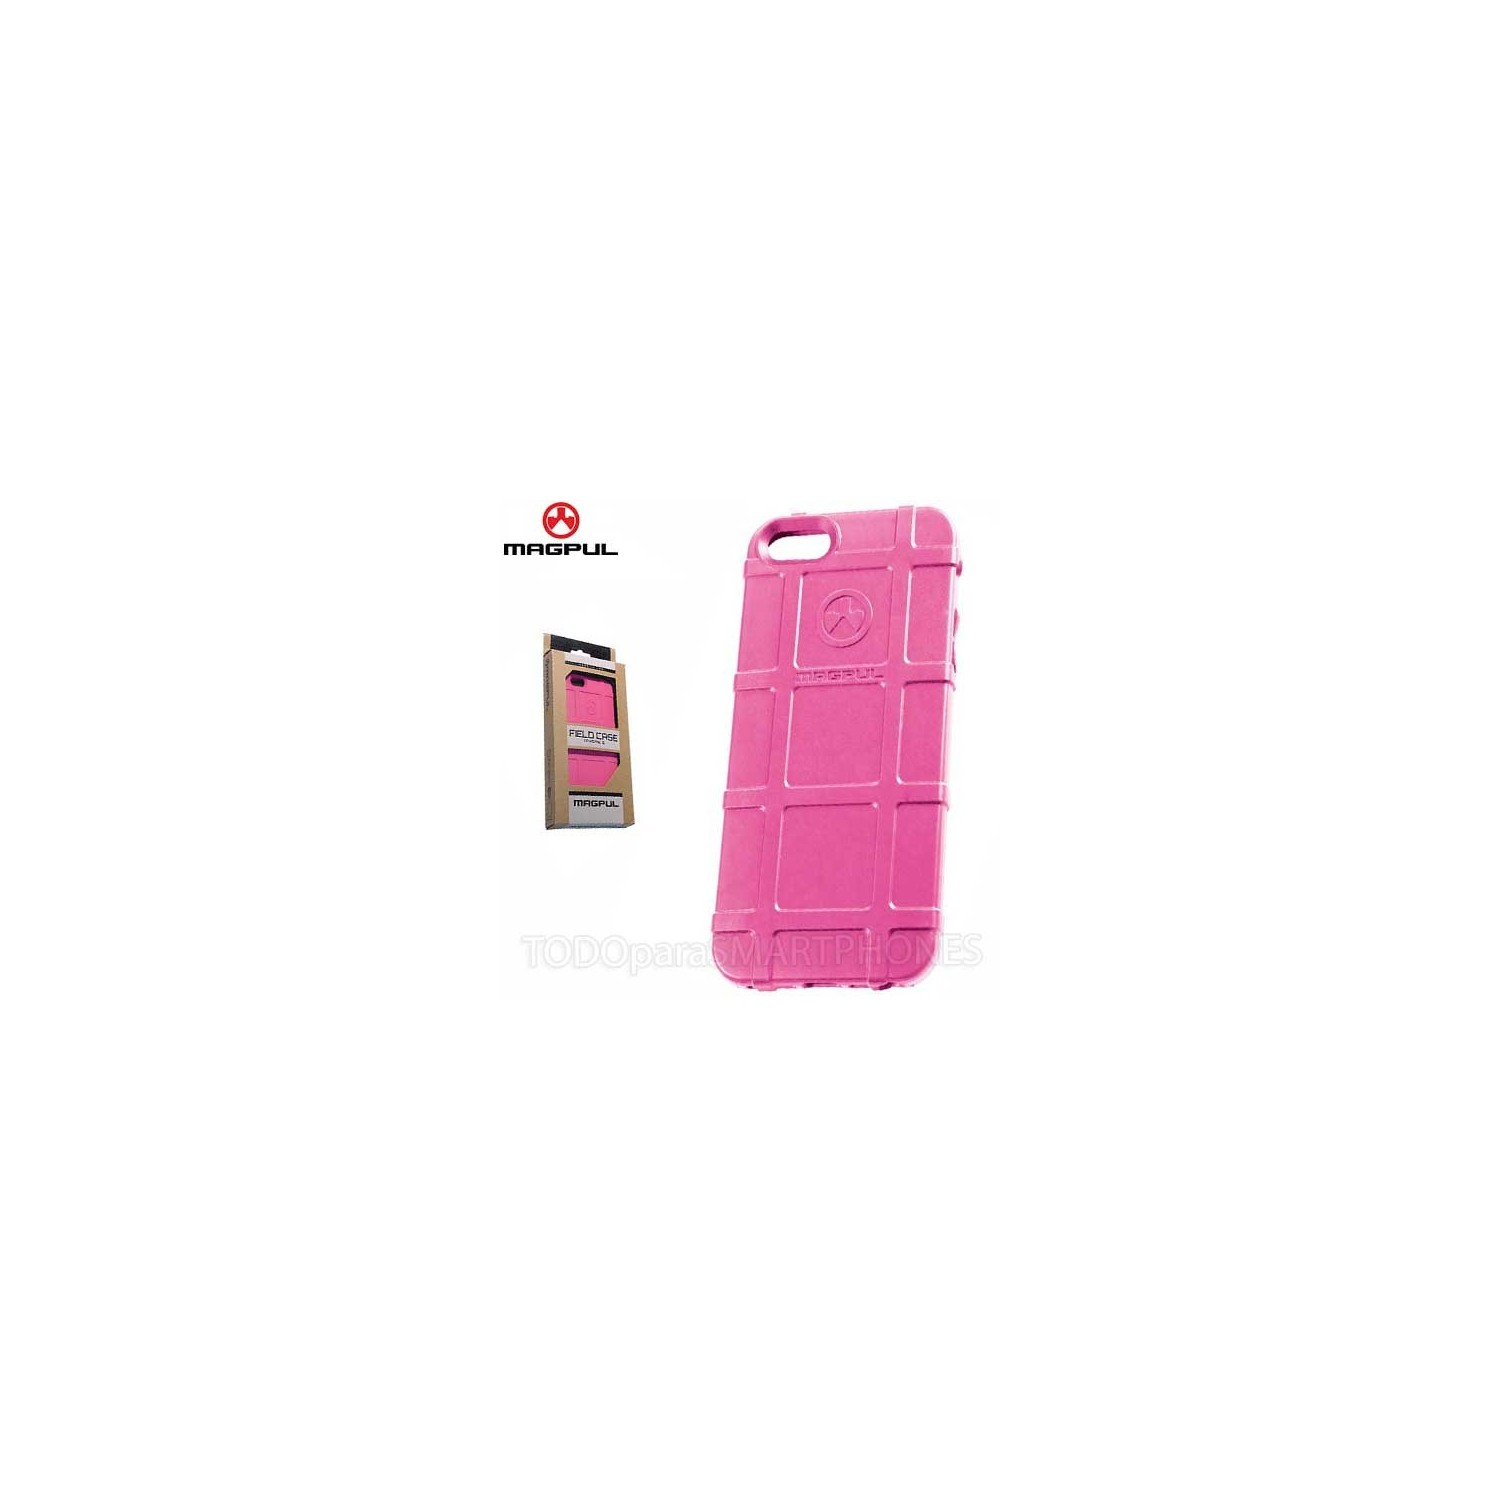 Case - Magpul field case for iPhone 6/6s Pink